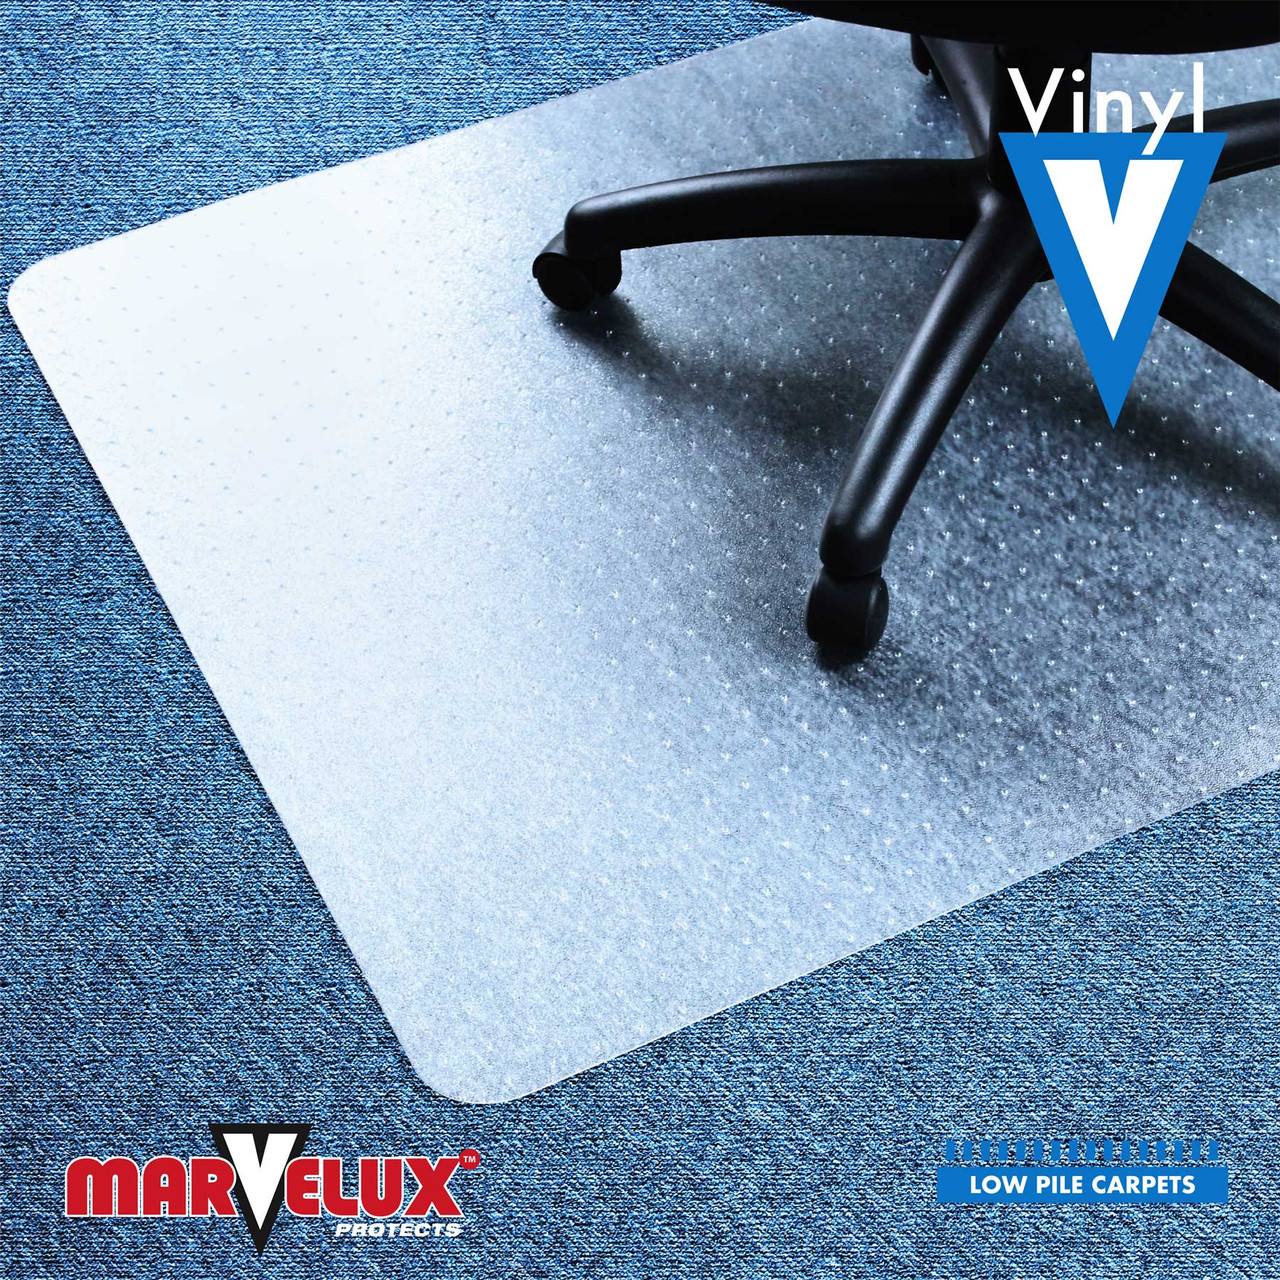 Picture of: Marvelux Pvc Vinyl Chair Mat For Very Low Pile Carpets And Carpet Tiles Rectangular Carpet Protector